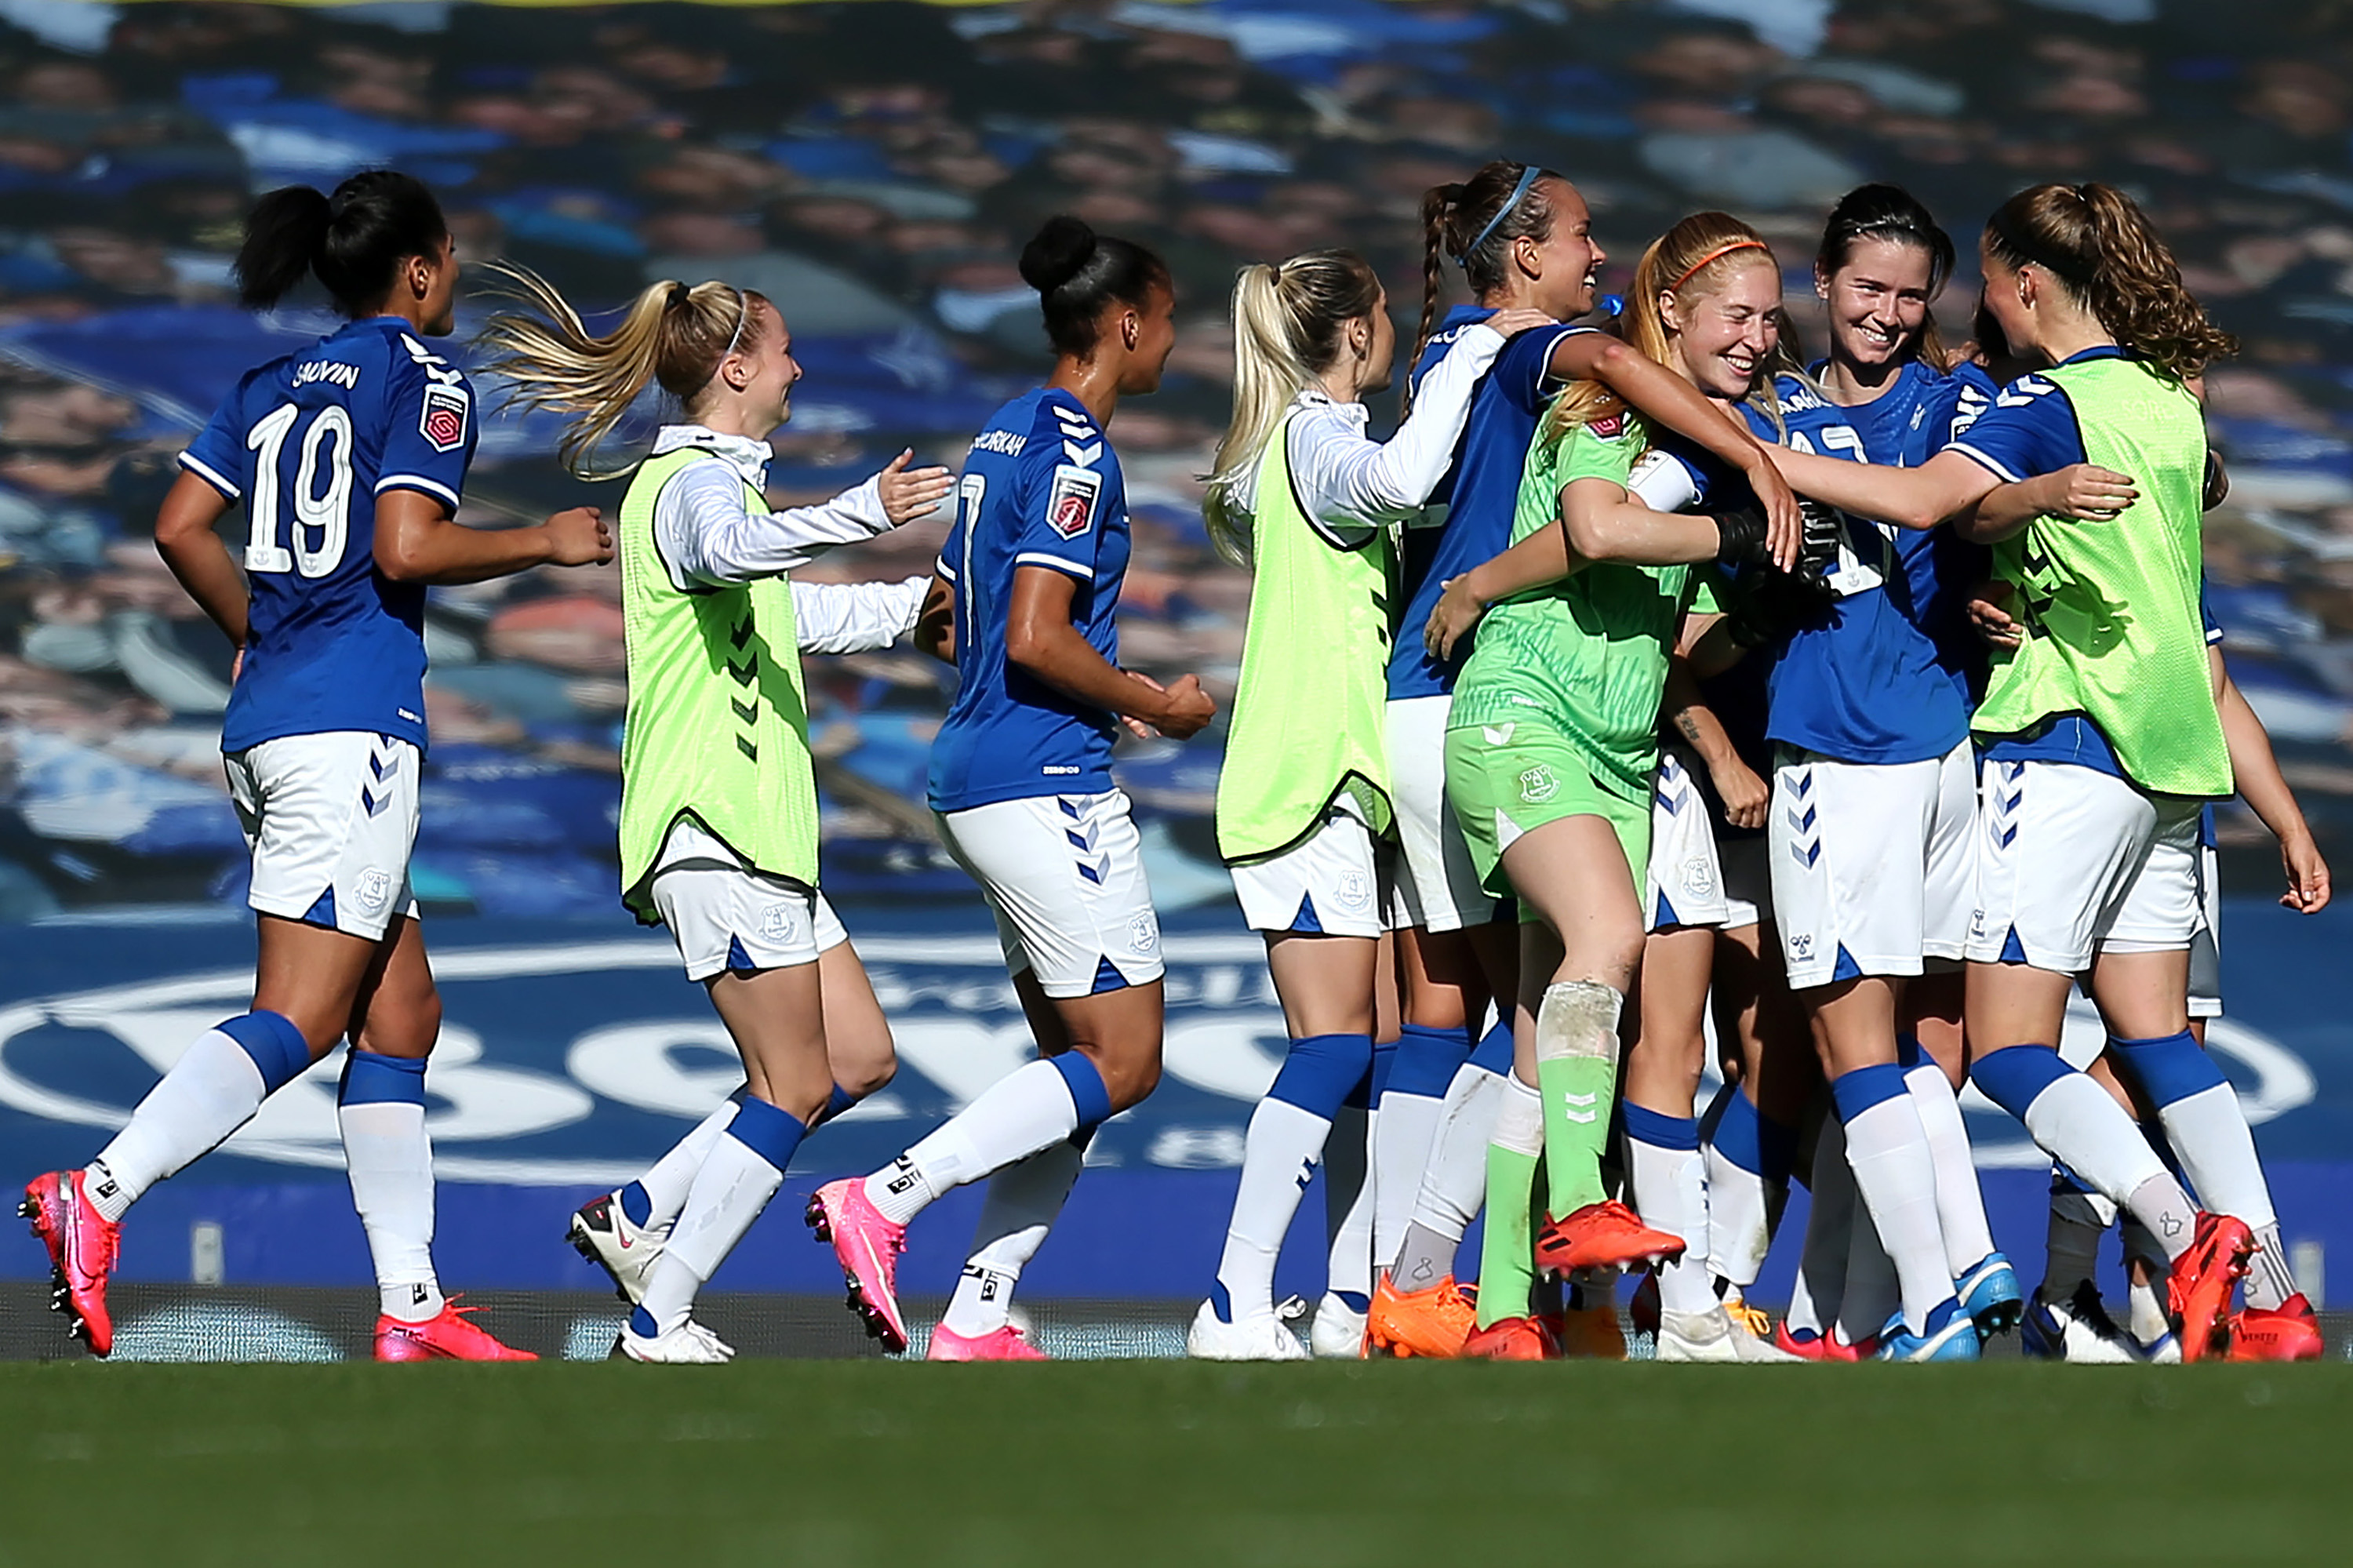 LIVERPOOL, ENGLAND - SEPTEMBER 27: Players of Everton celebrate at full time after victory in the Women's FA Cup Quarter Final match between Everton FC and Chelsea FC at Goodison Park on September 27, 2020 in Liverpool, England. Sporting stadiums around the UK remain under strict restrictions due to the Coronavirus Pandemic as Government social distancing laws prohibit fans inside venues resulting in games being played behind closed doors. (Photo by Lewis Storey/Getty Images)